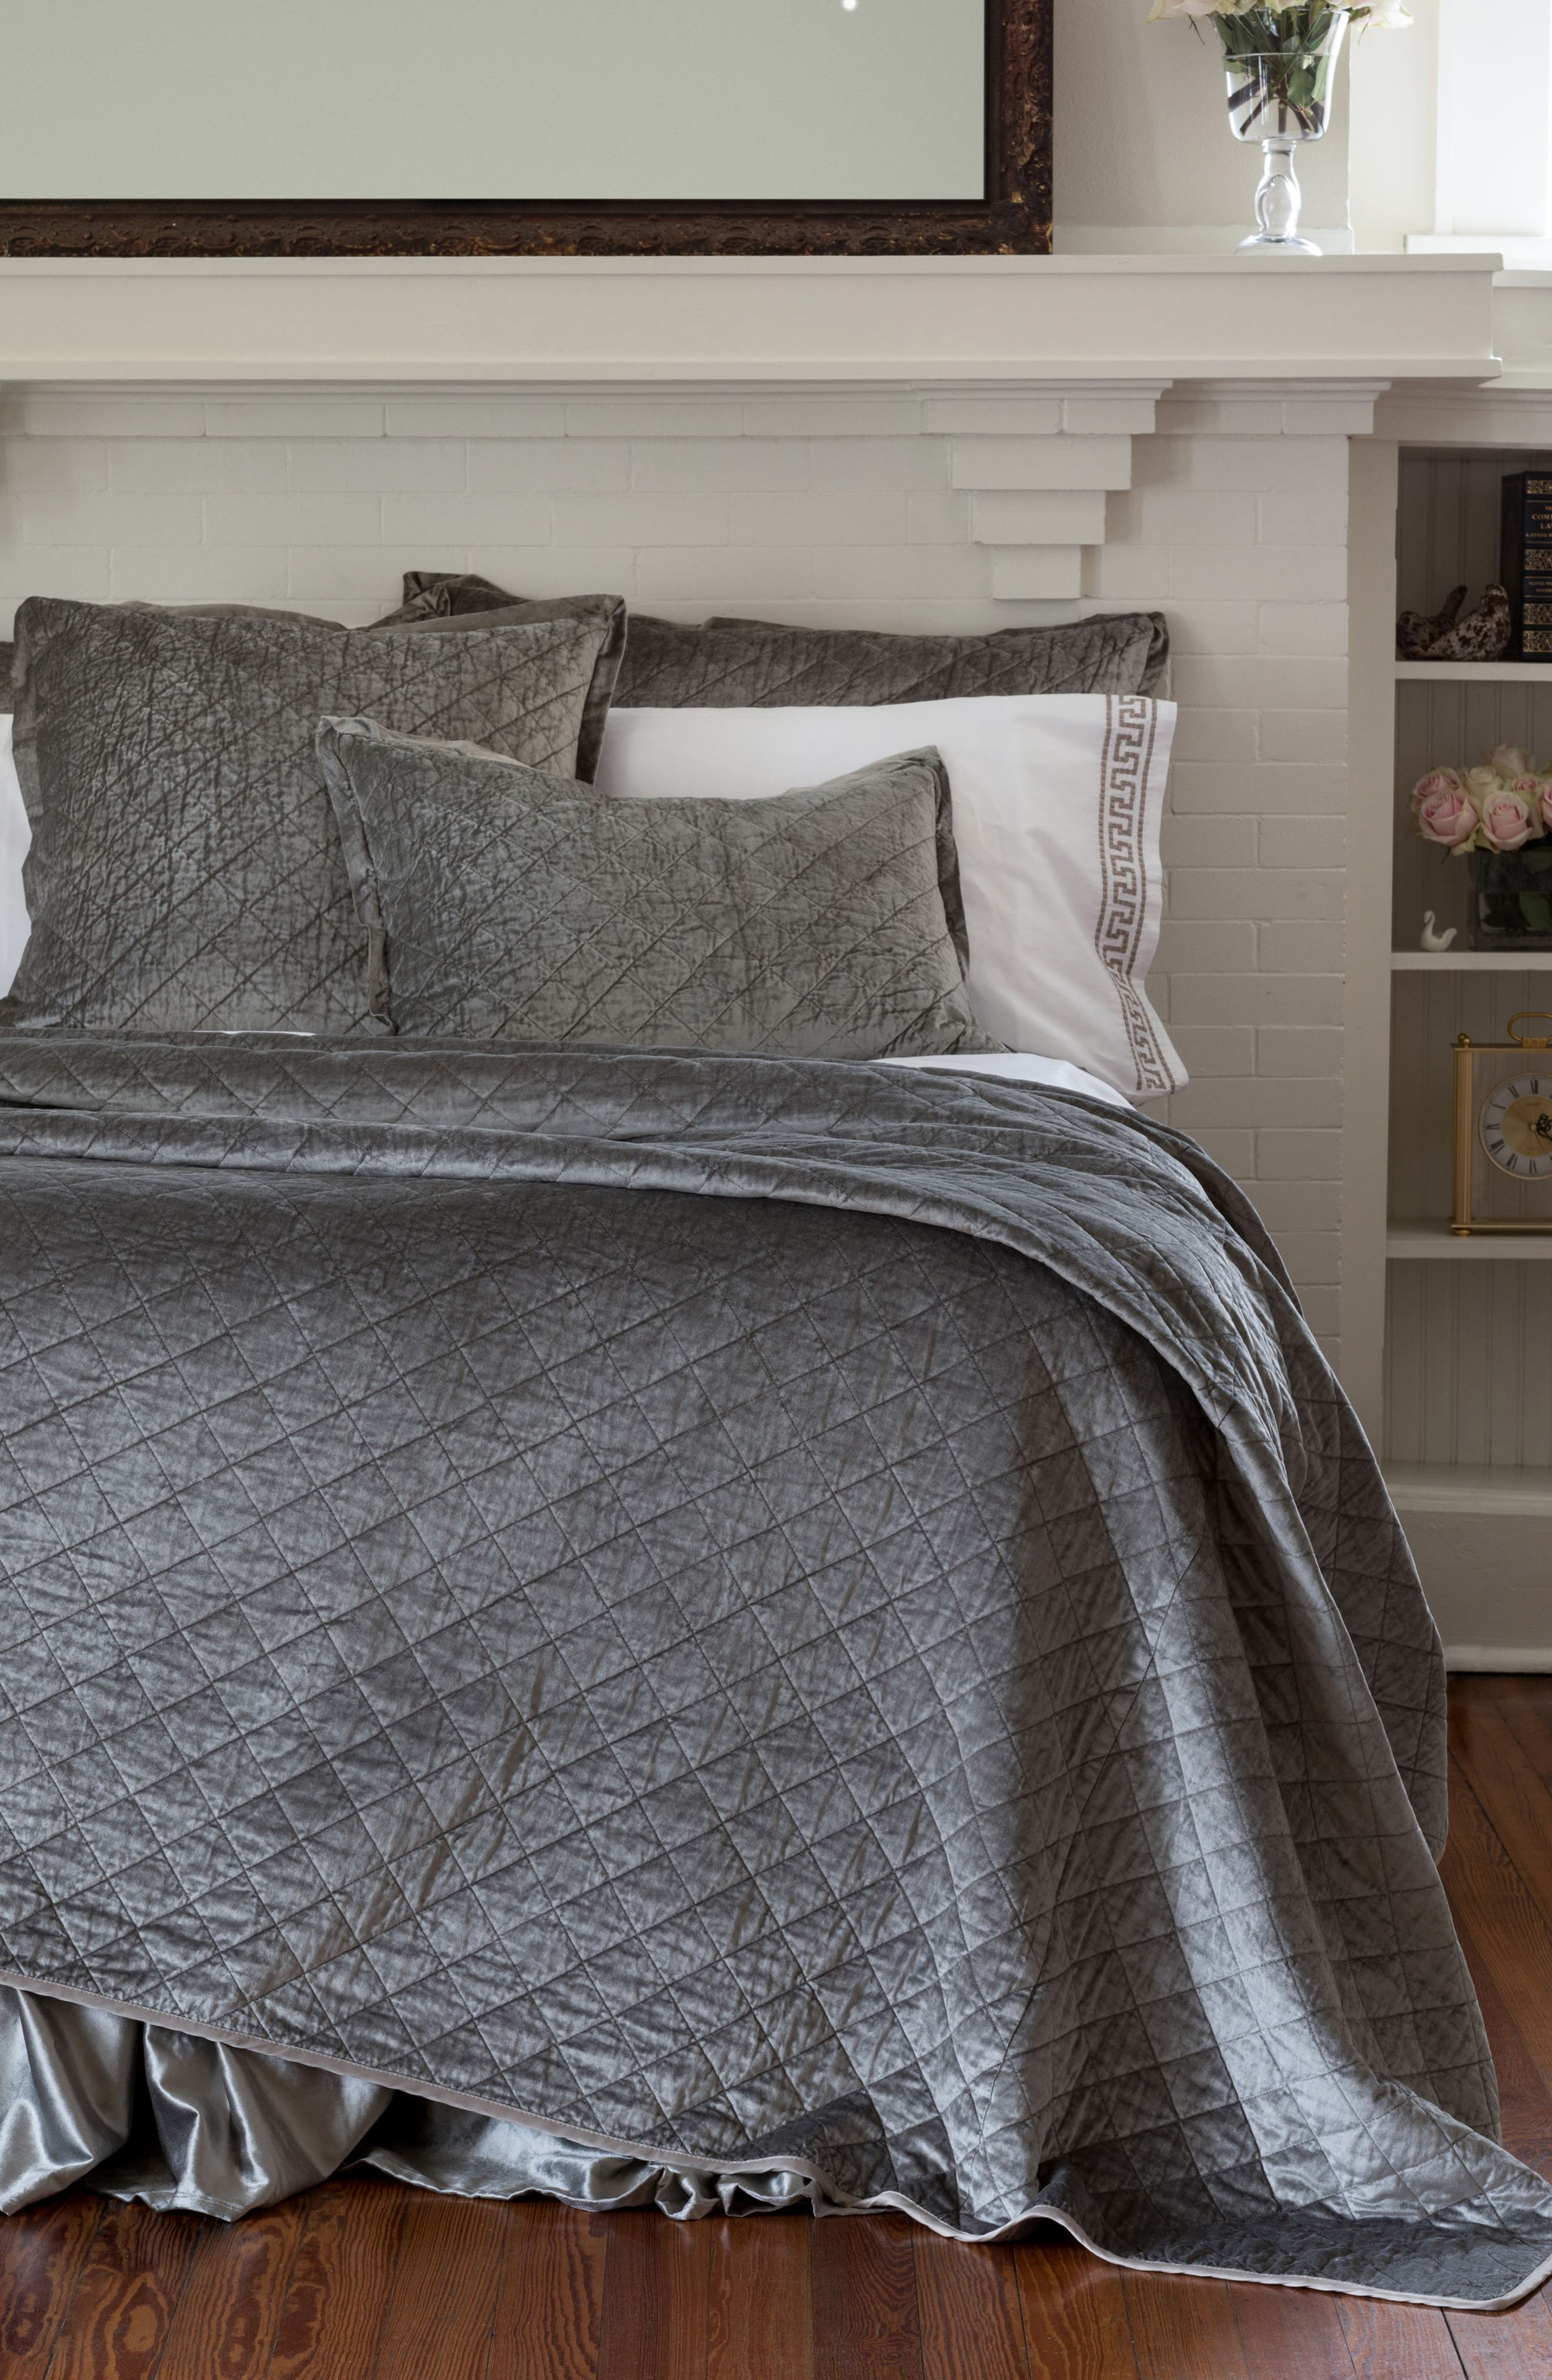 Chloe Quilted Coverlet,                             Main thumbnail 1, color,                             020